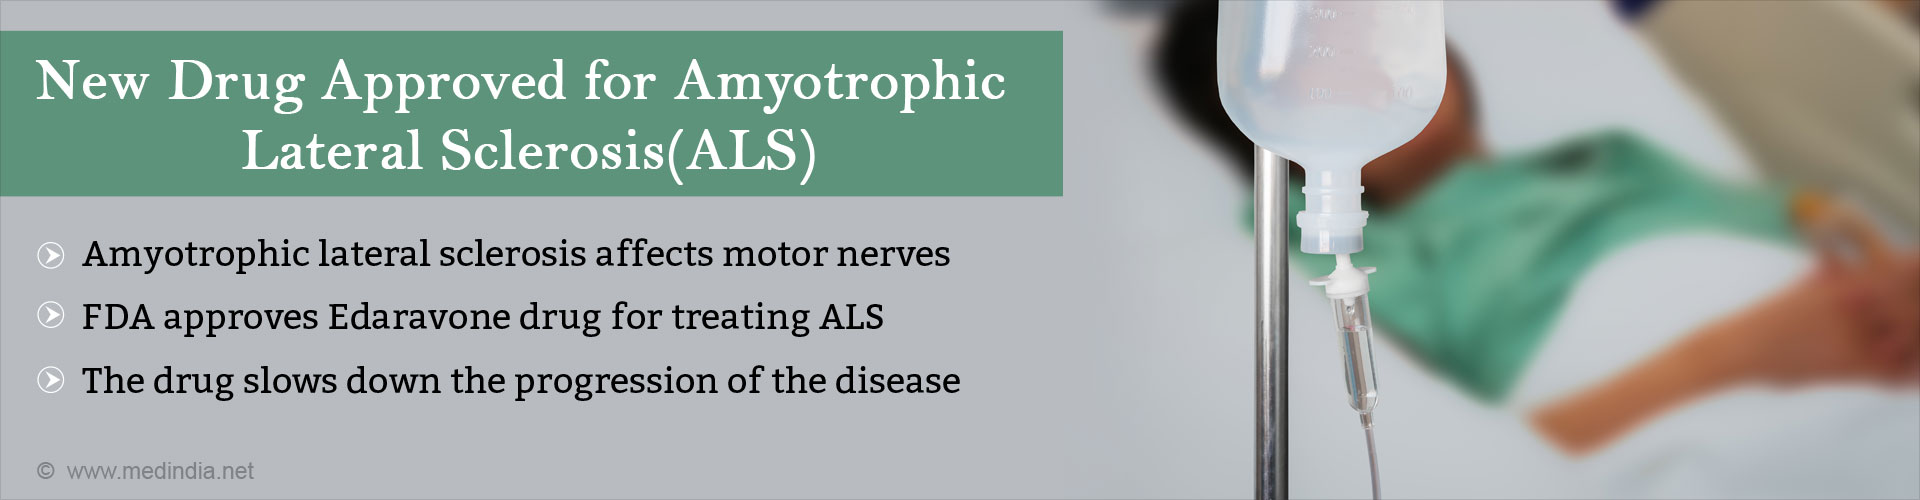 New drug approved for amyotrophic lateral sclerosis (ALS) - ALS affects motor nerves - FDA approves Edaravone drug for treating ALS - The drug slows down the progession of the disease